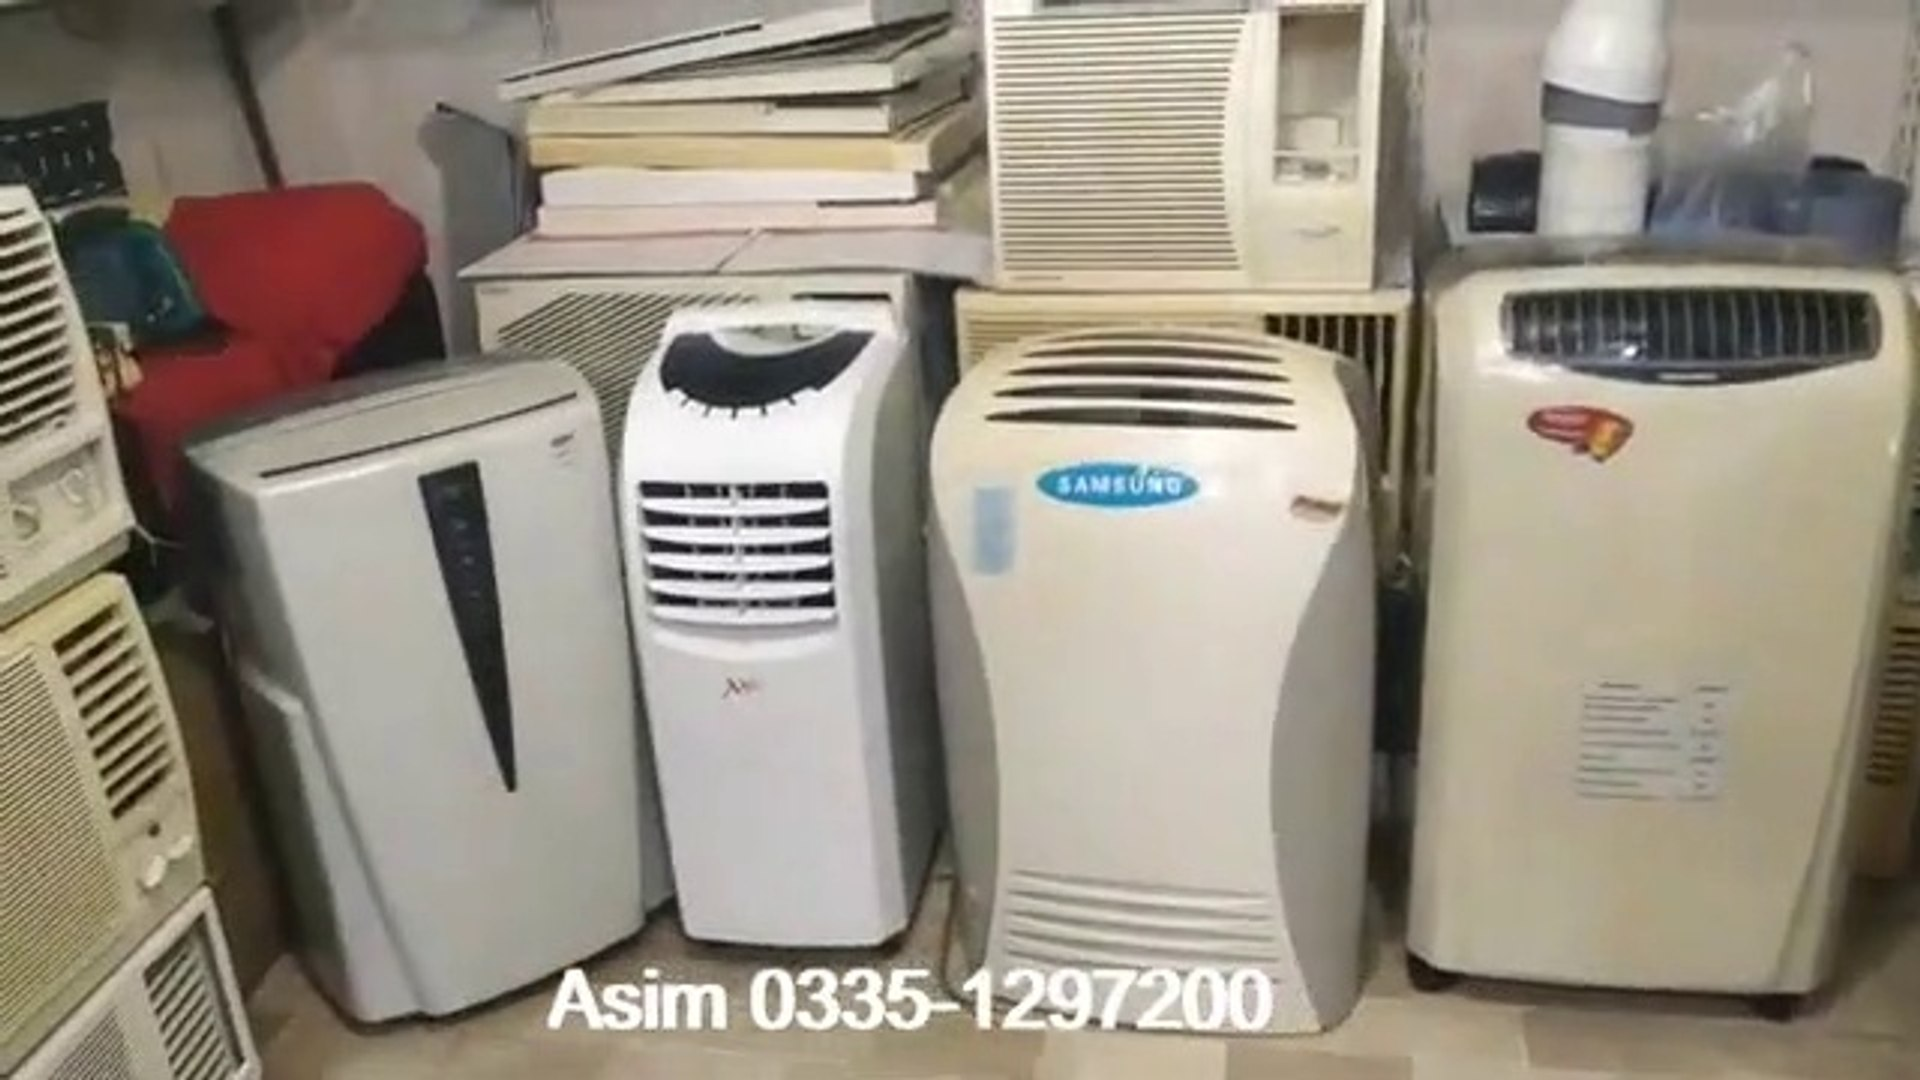 Jackson market karachi imported low price portable ac, mobile ac, ship ac, window ac, prices 2020